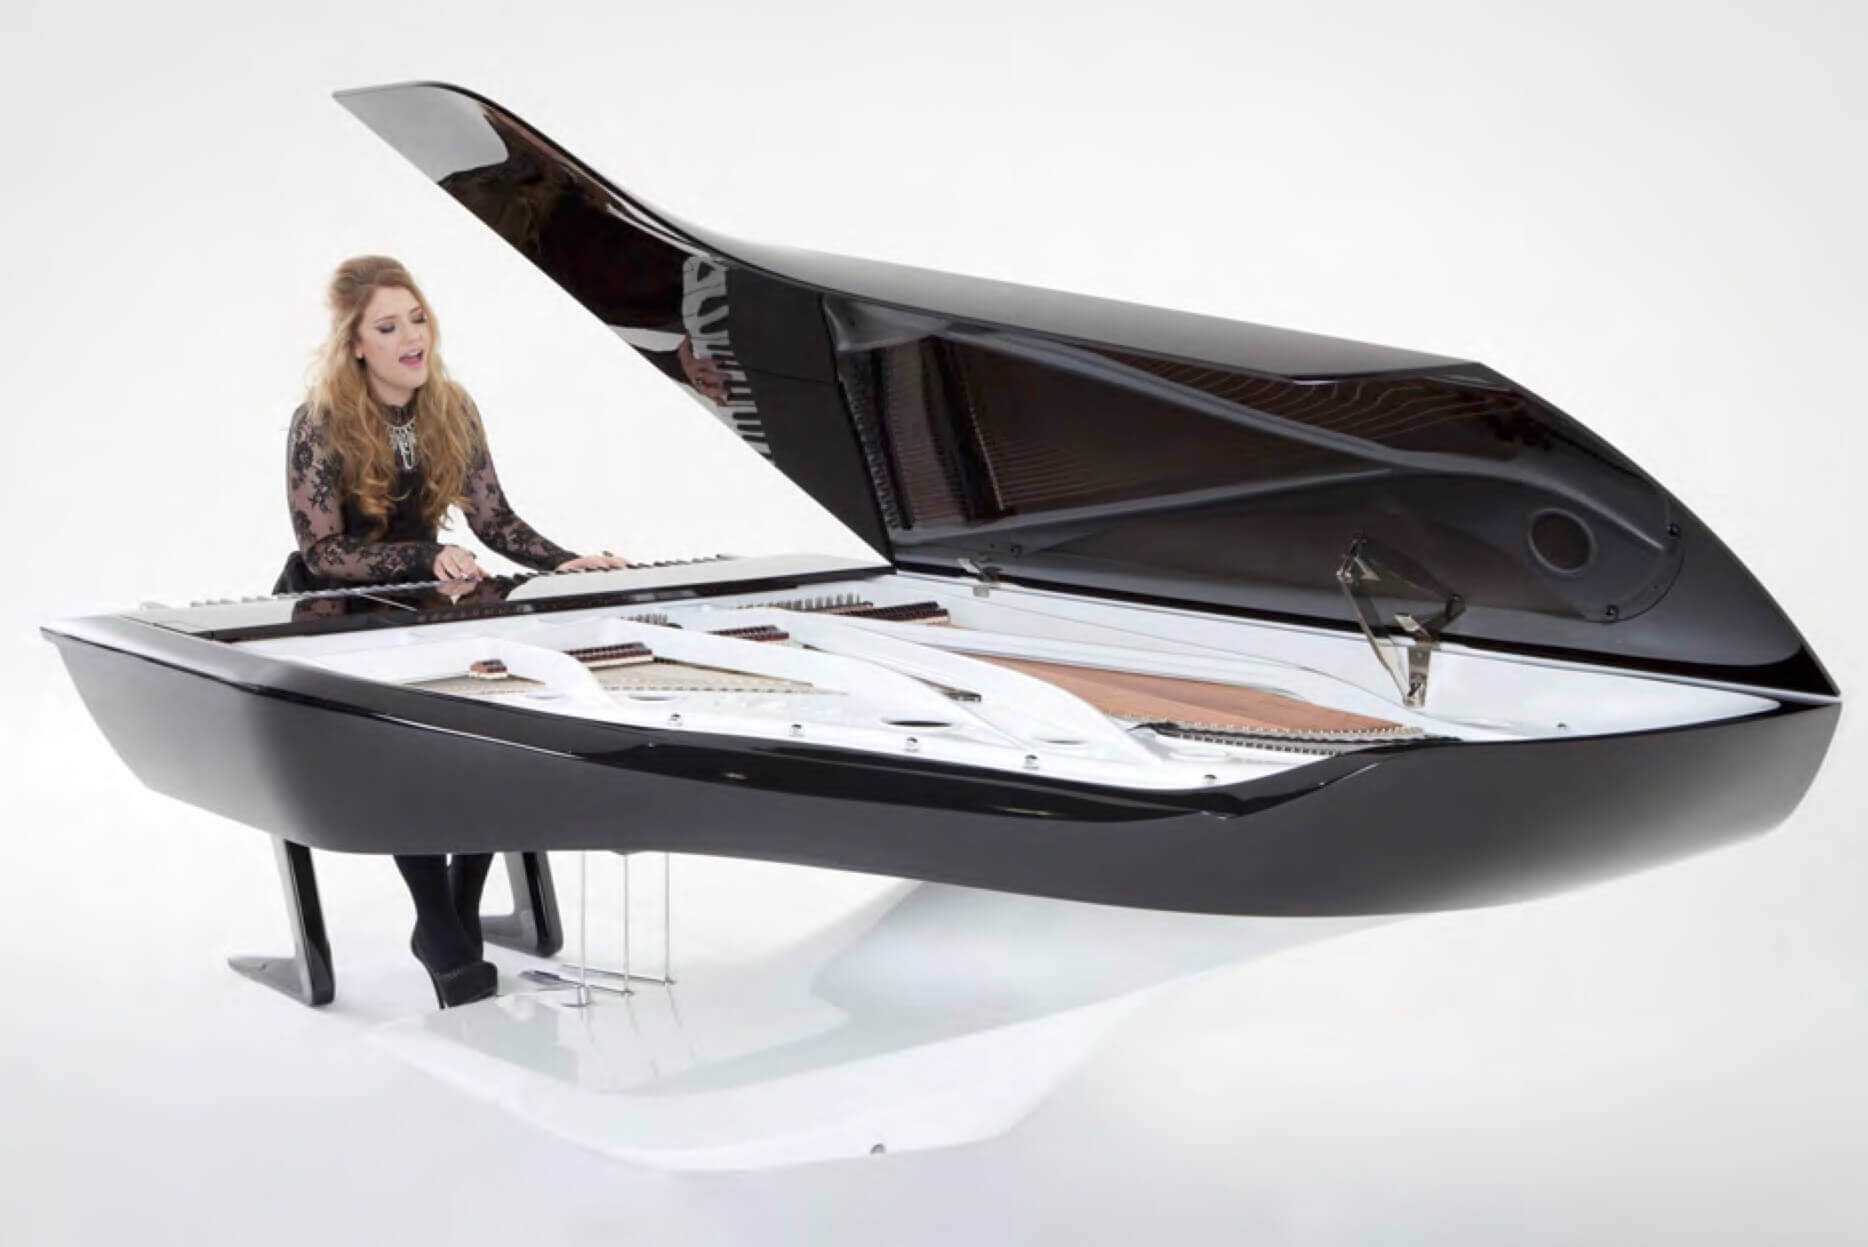 Pleyel grand piano designed by Peugeot Design Lab